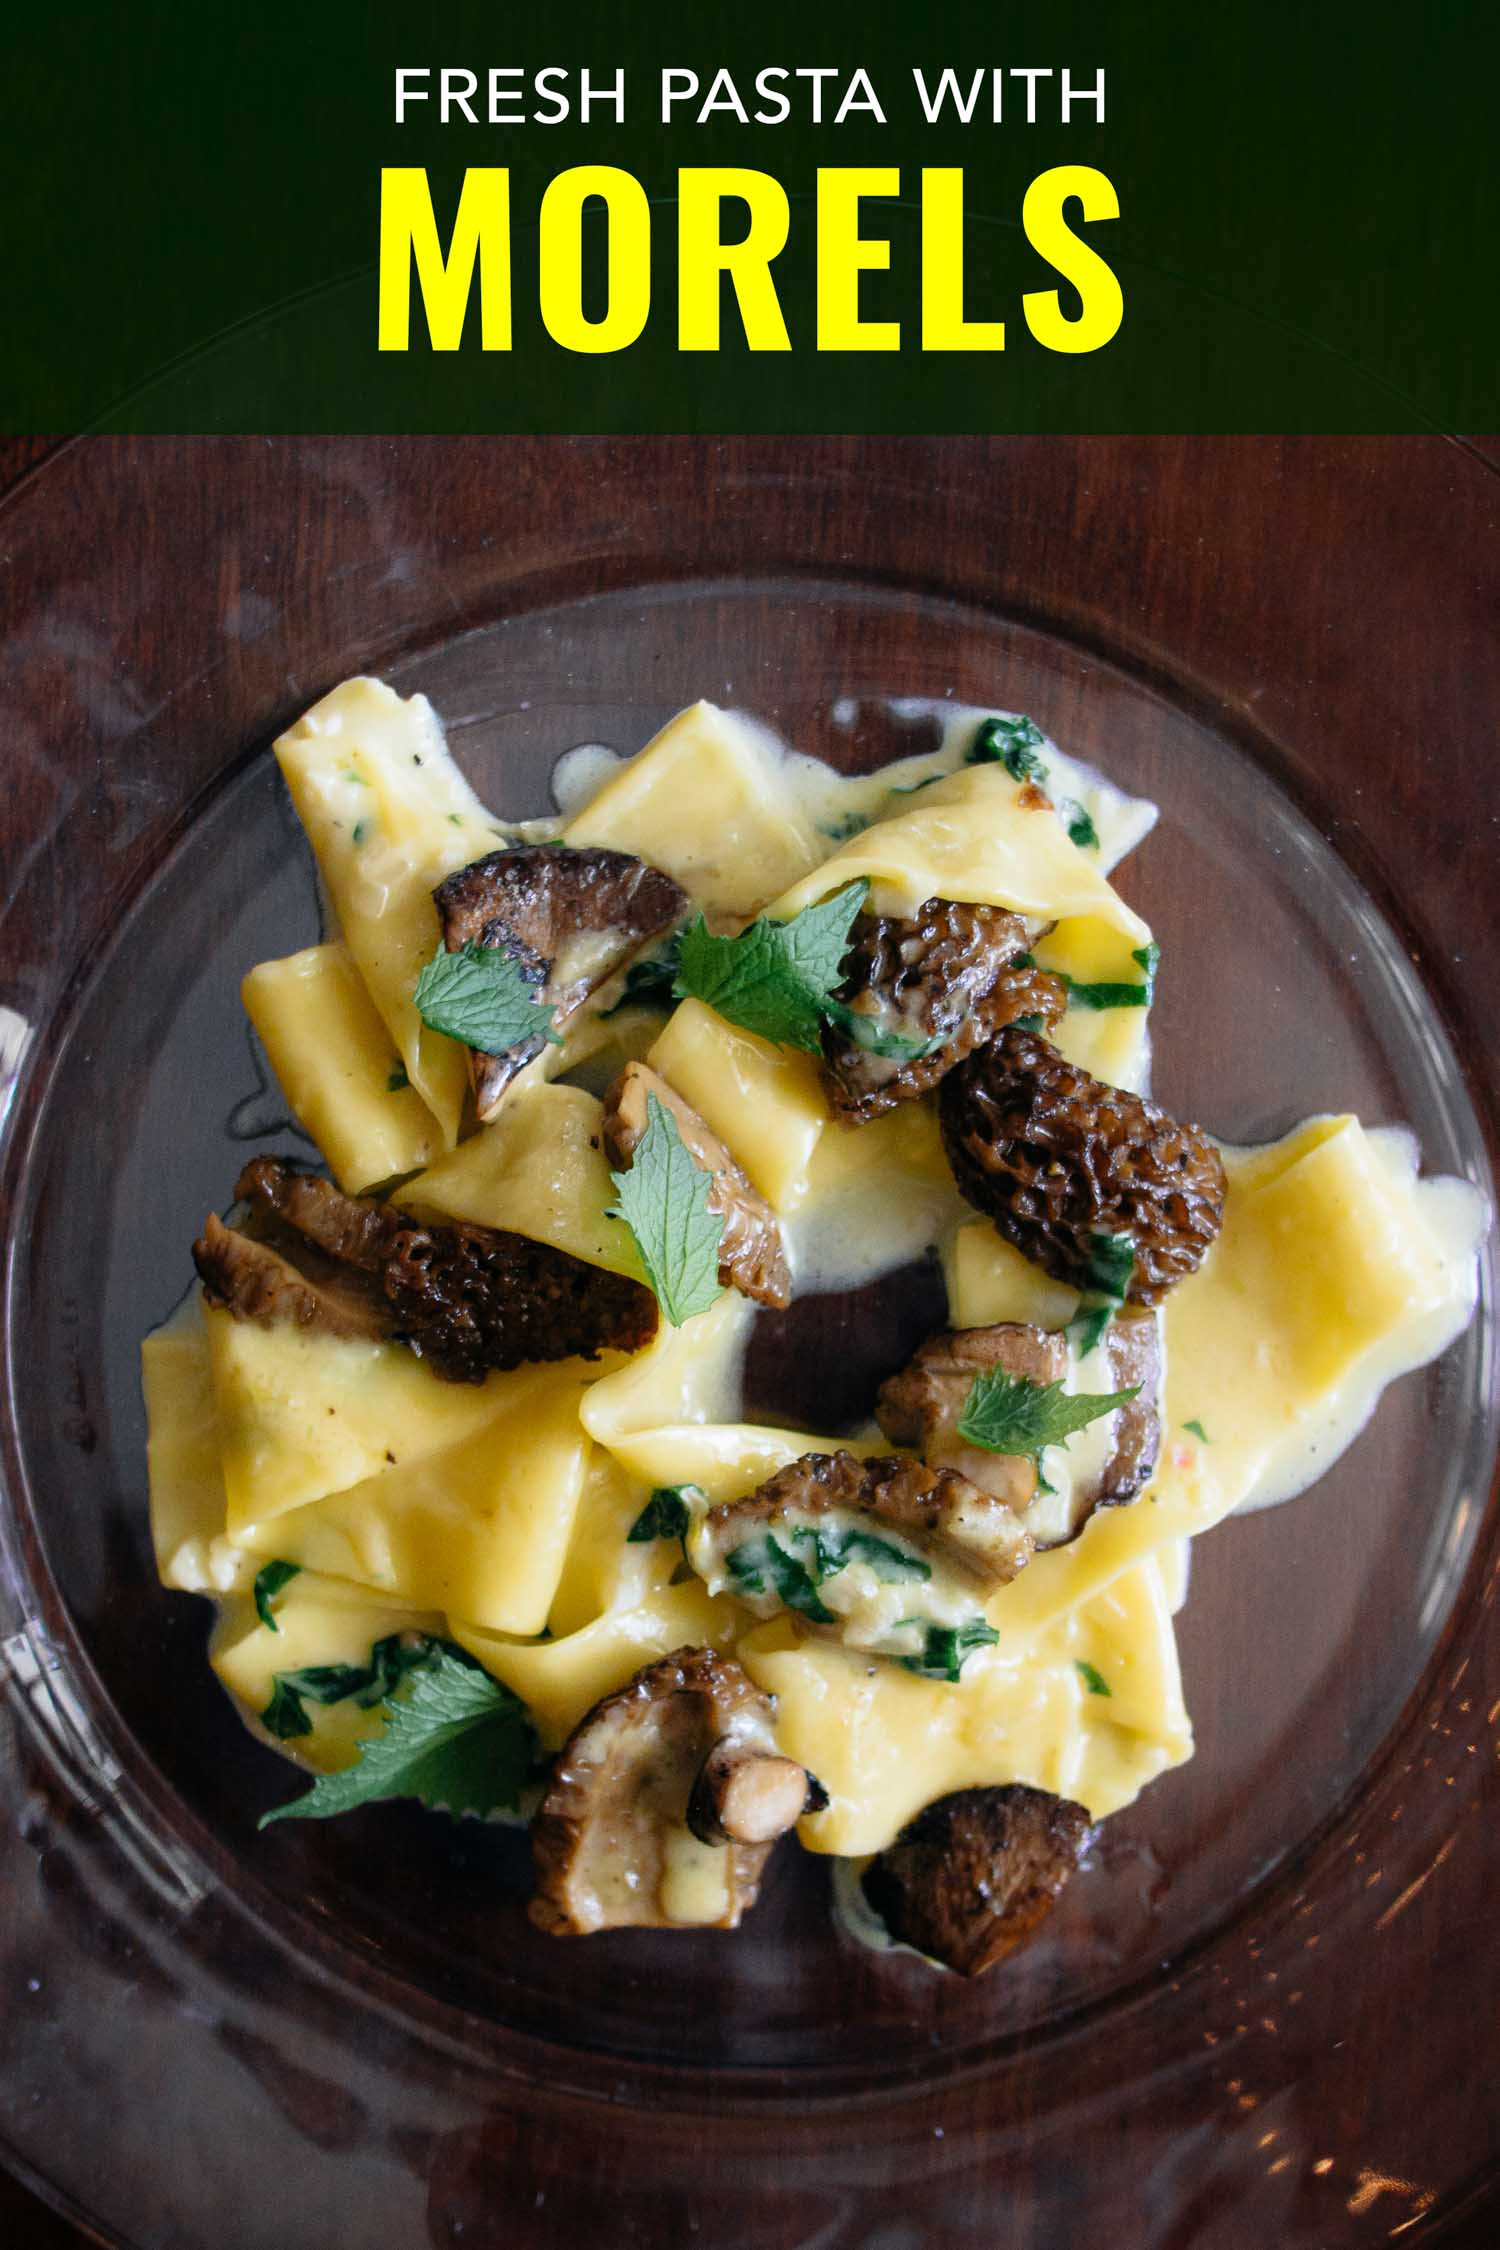 Fresh pappardelle pasta with morel mushrooms on a glass plate.